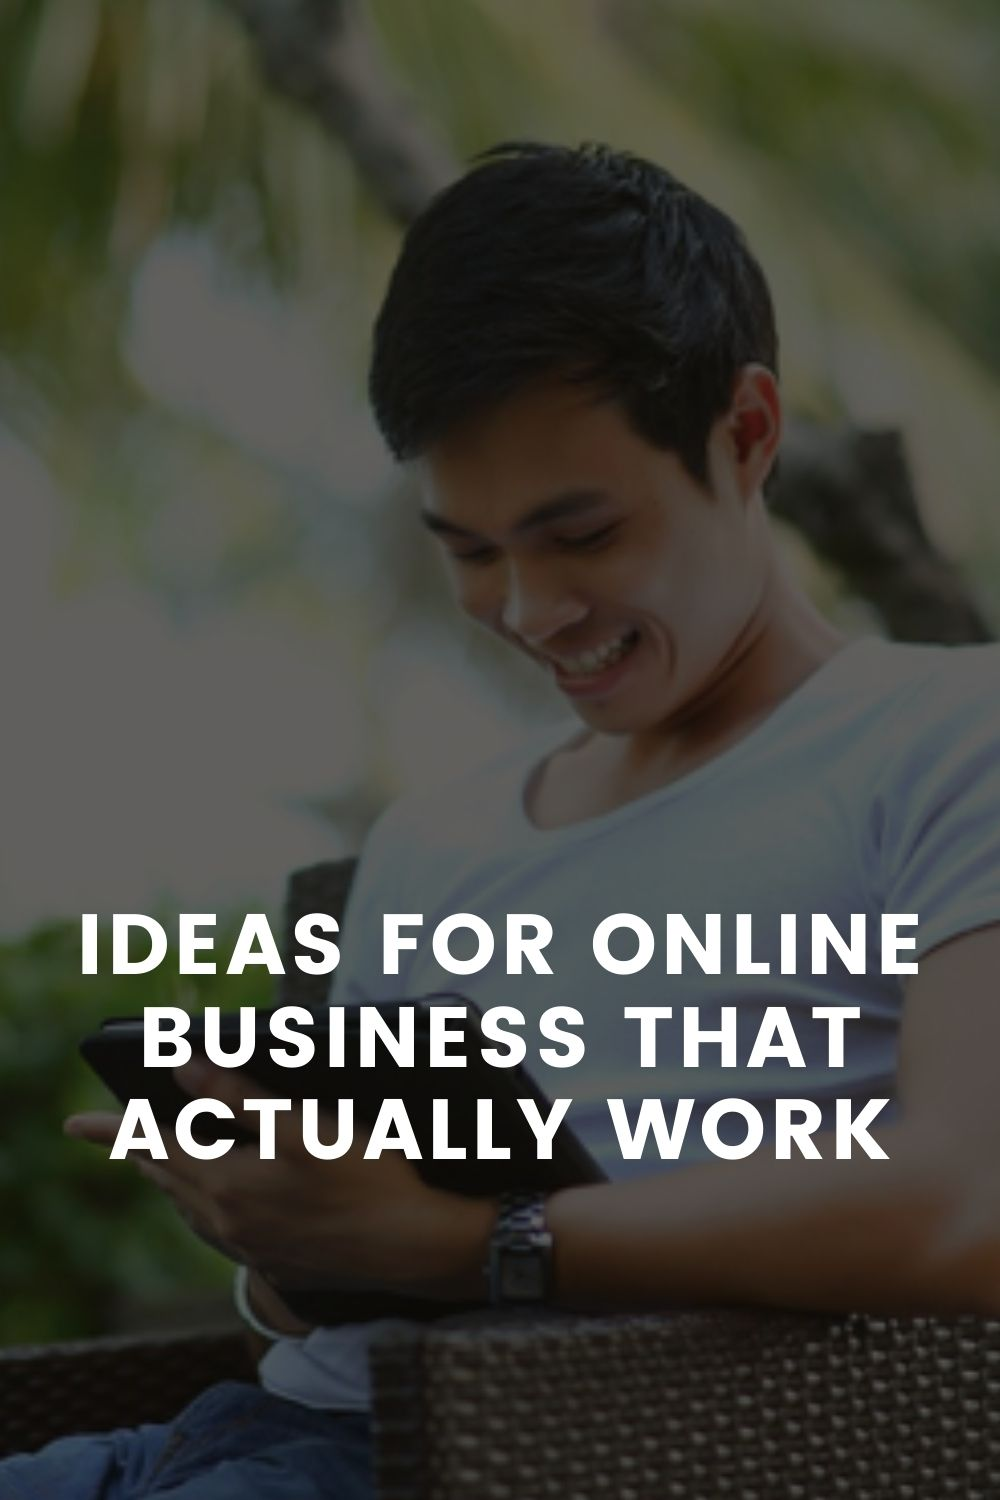 Ideas for Online Business That Actually Work